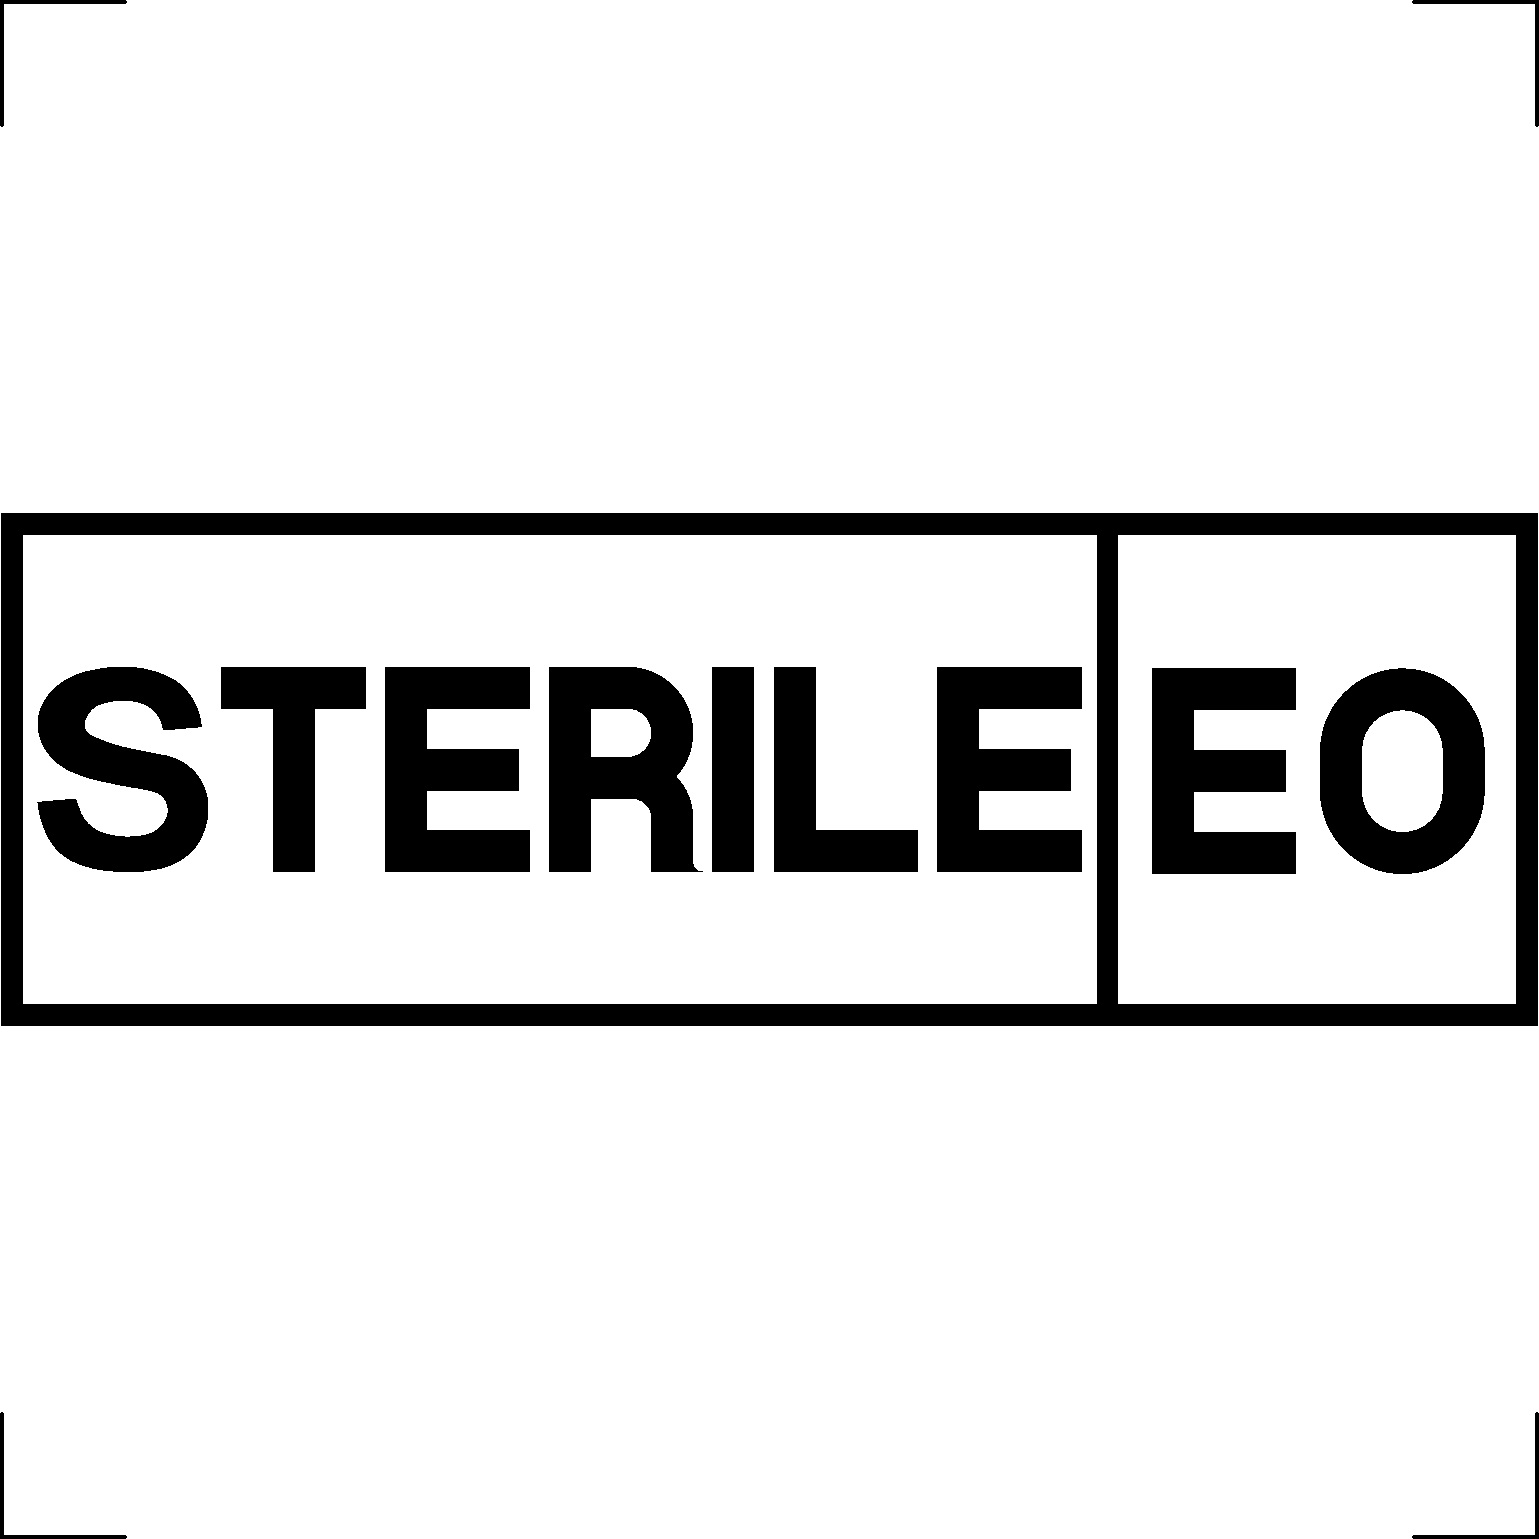 Steril, Sterilisationsmethode